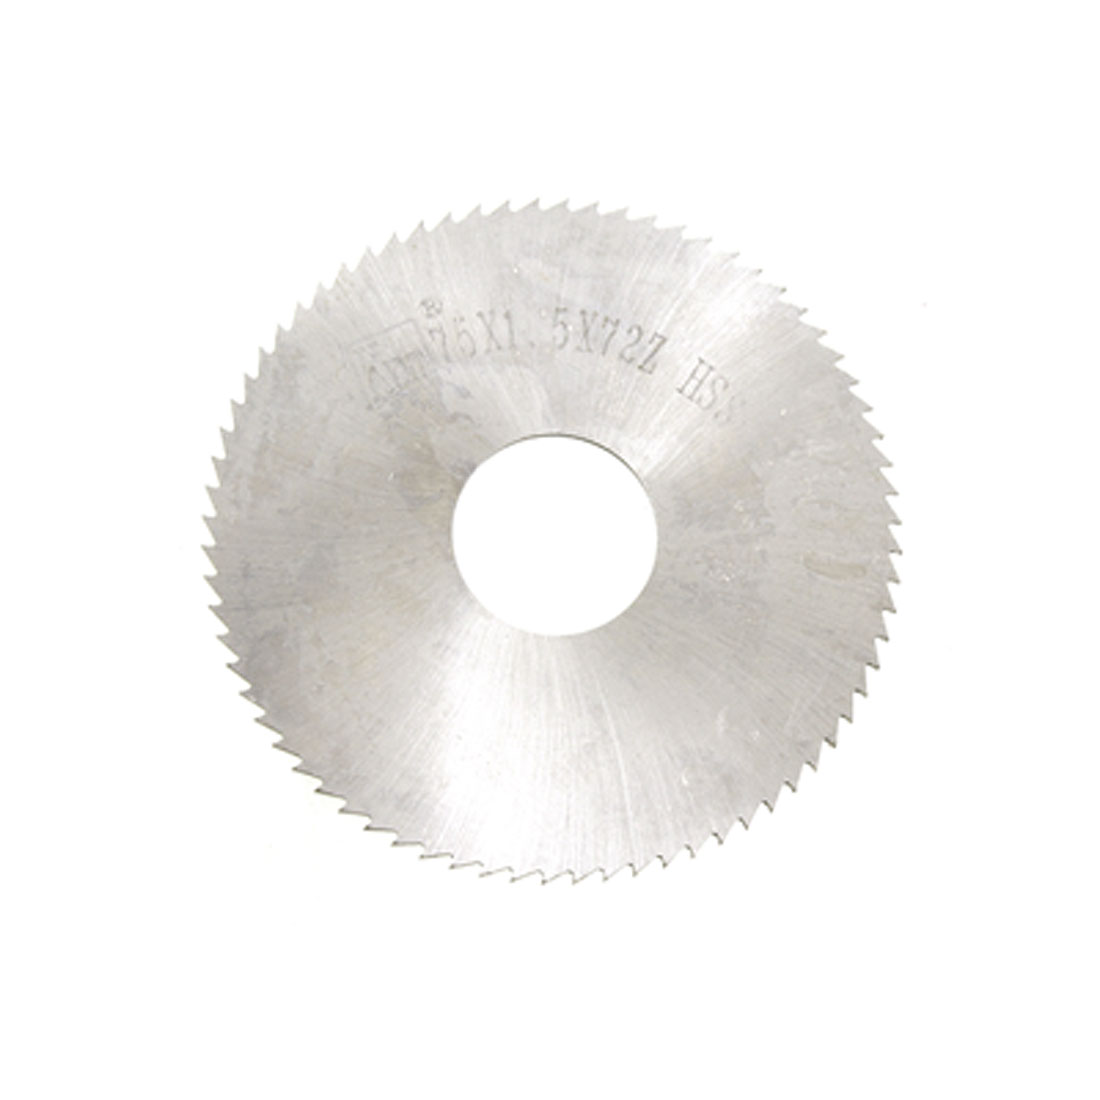 High Speed Steel 75 x 1.5 x 72 Circle Saw Mill Milling Cutter